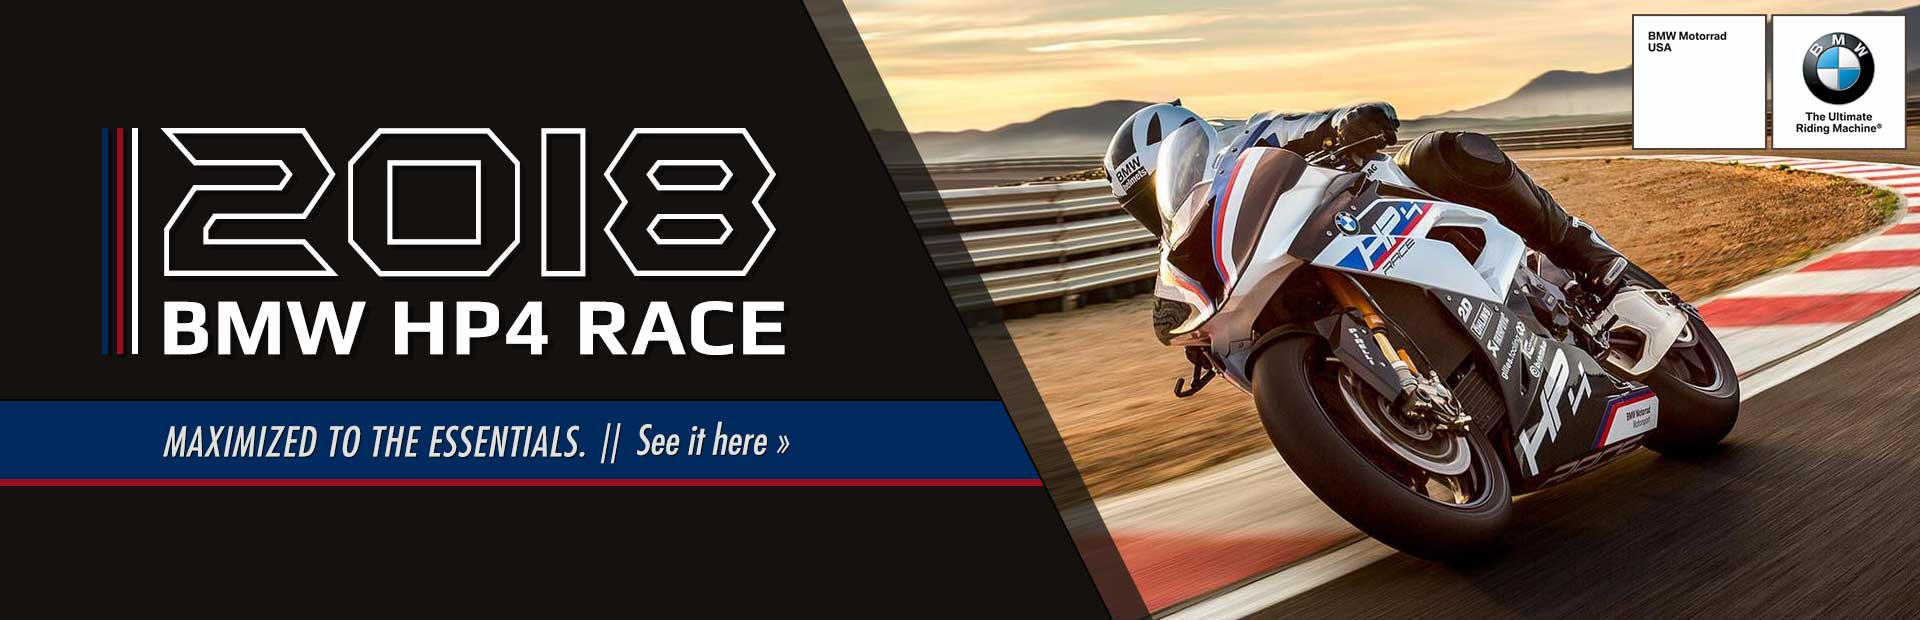 The 2018 BMW HP4 Race: Click here for details.